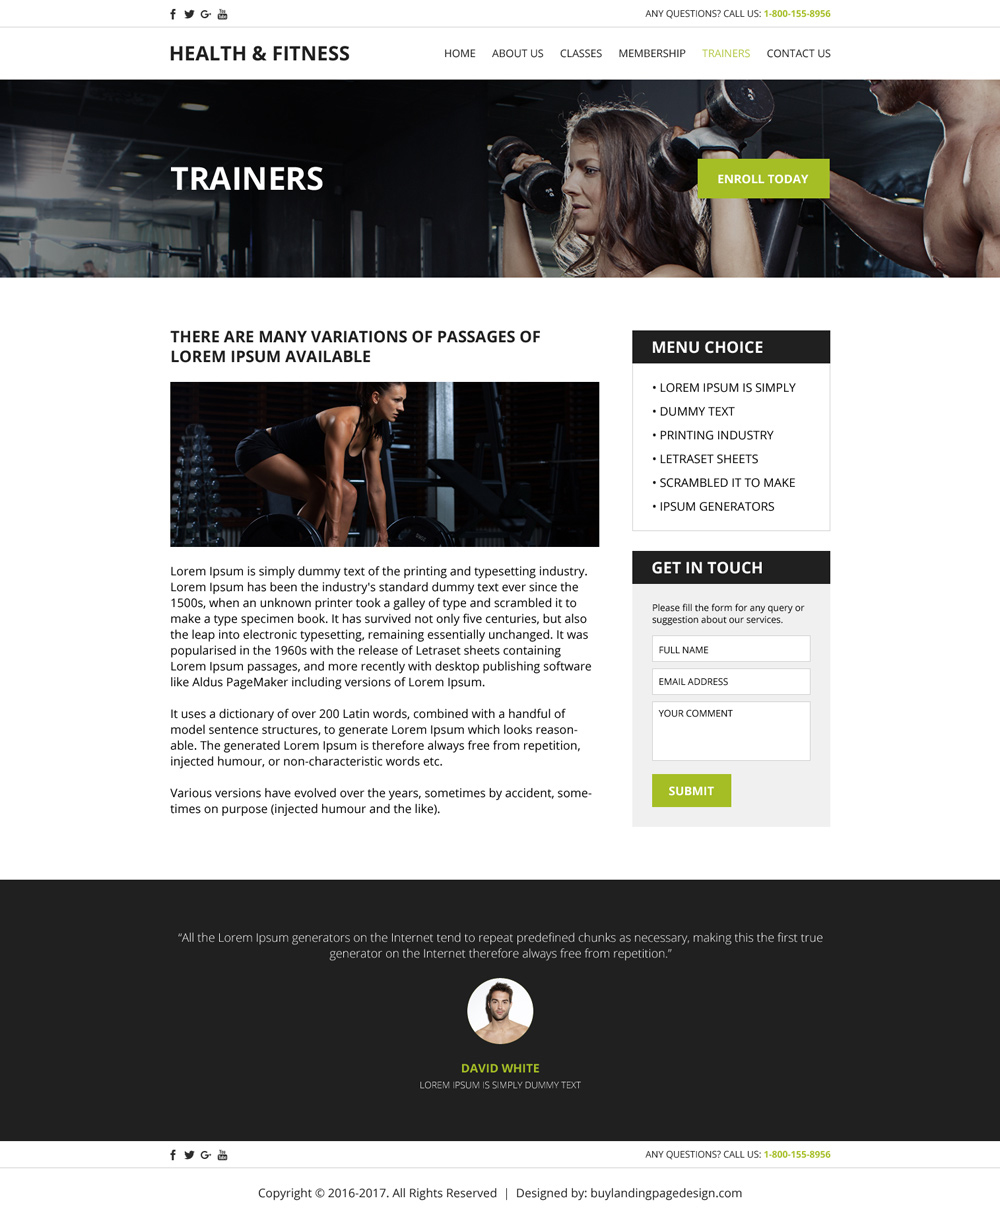 health-and-fitness-html-website-template-to-create-your-professional-health-and-fitness-website-trainers-page-001